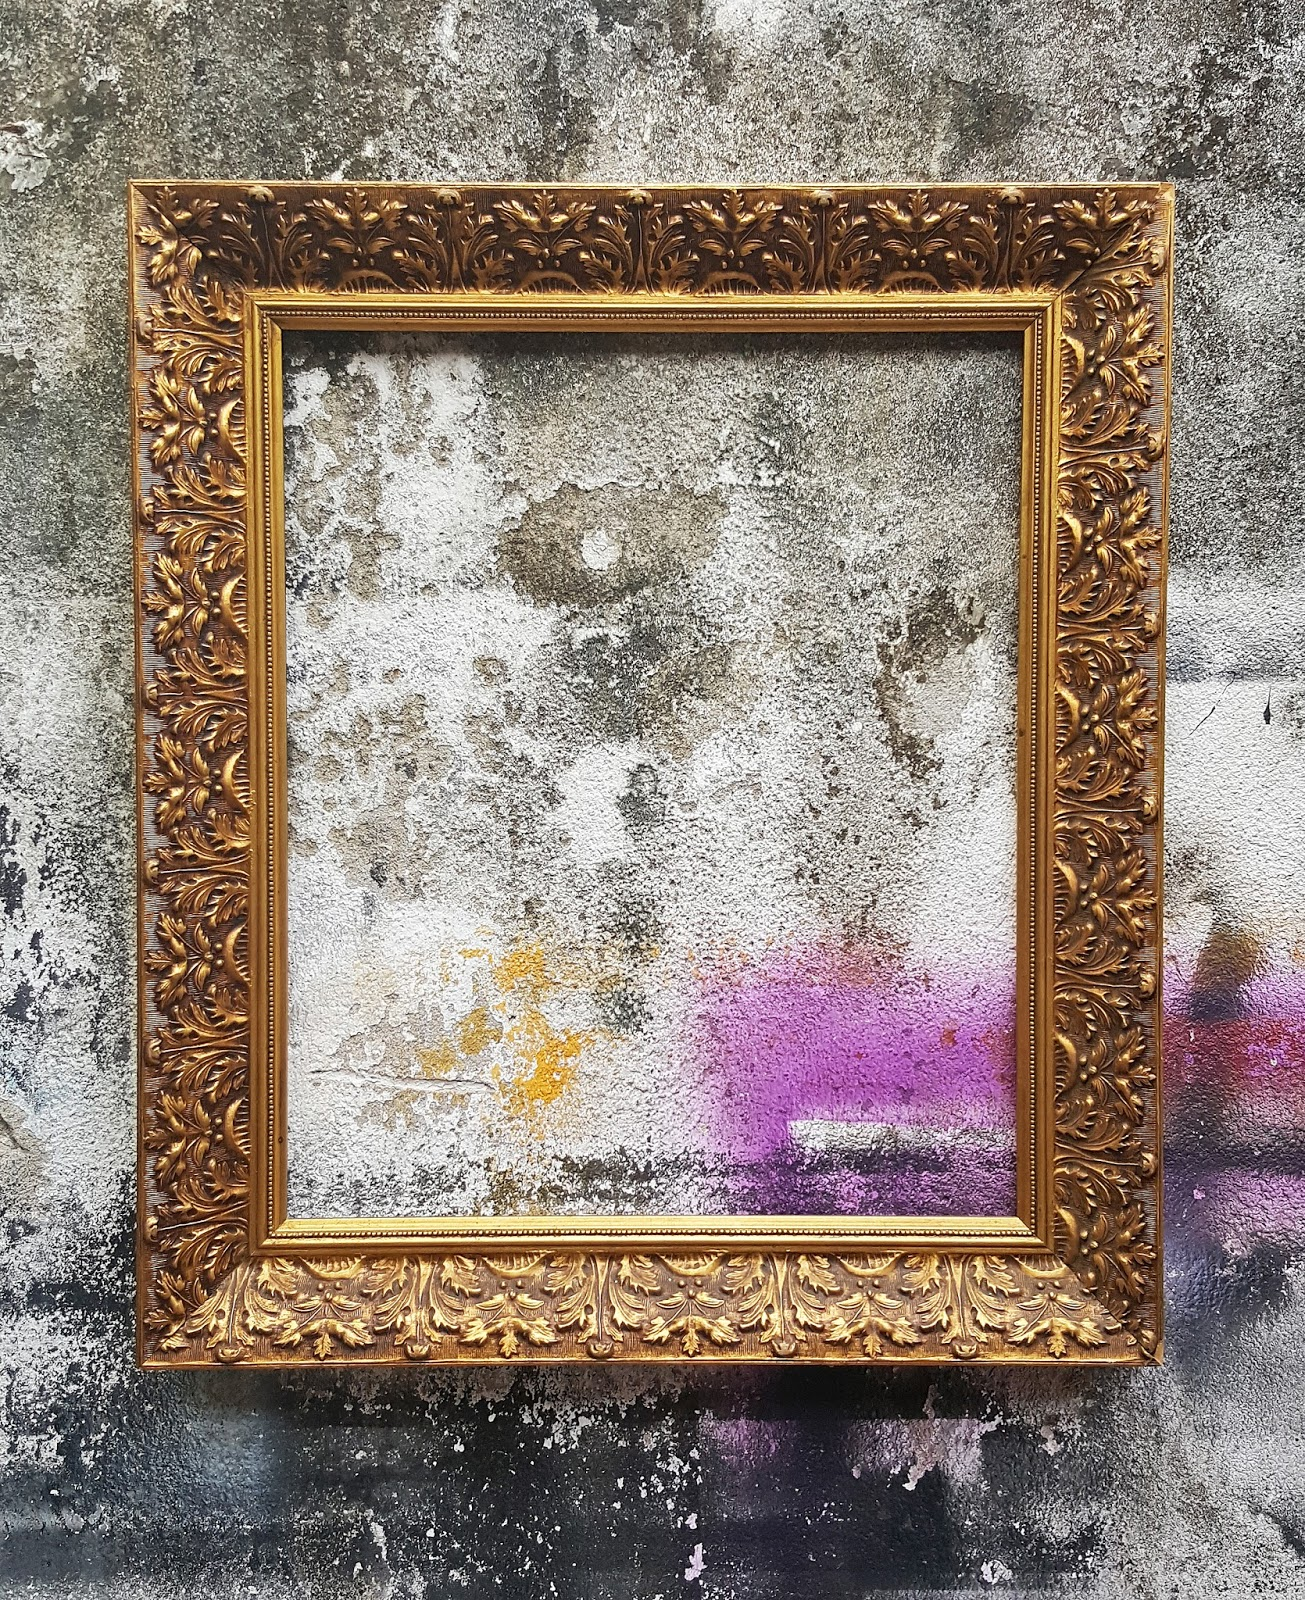 Frame shop in Kuala Lumpur - Talens Frames Gallery: Old frames ...